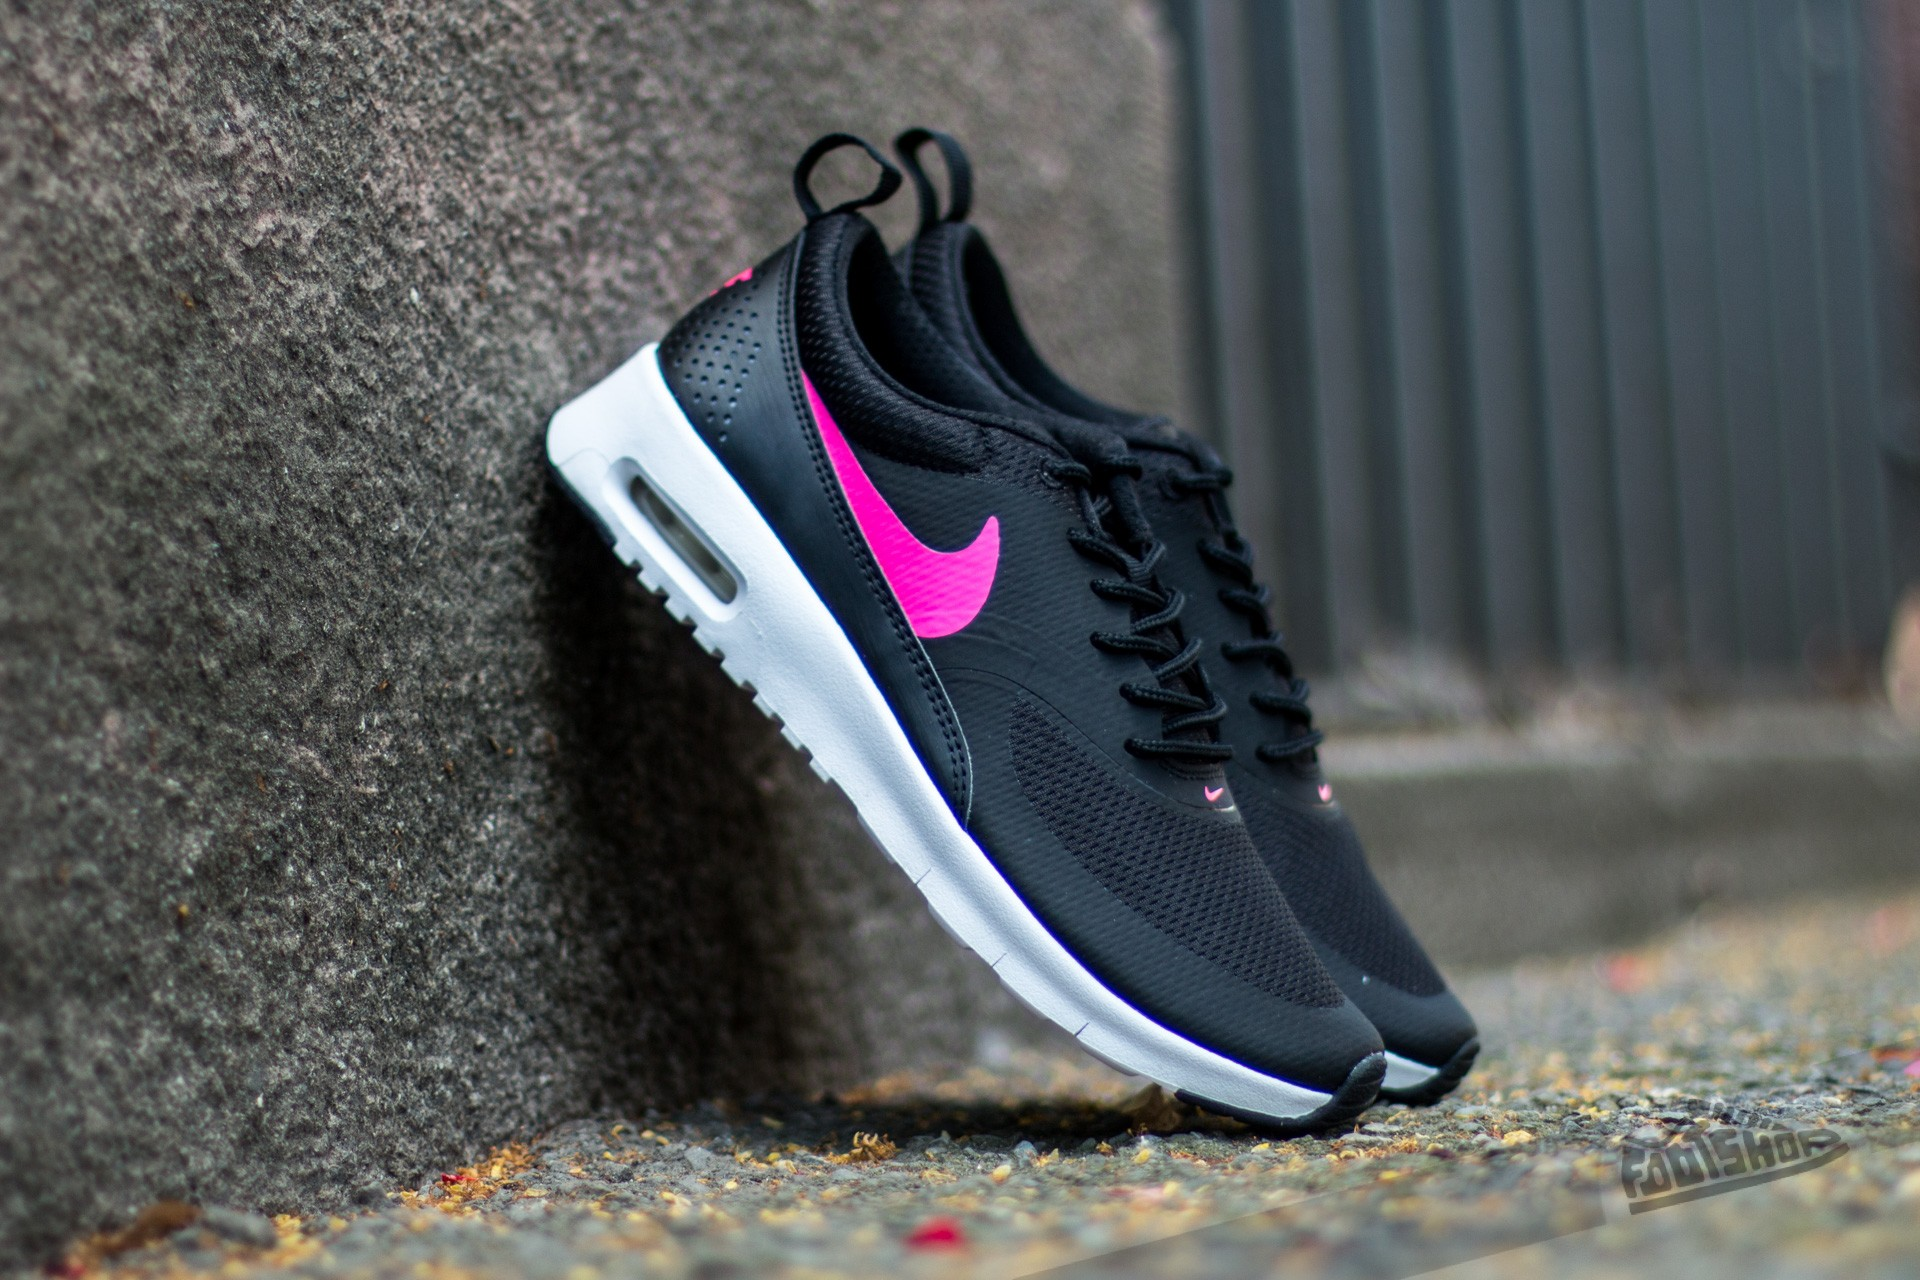 cheap nike air max thea black pink. Black Bedroom Furniture Sets. Home Design Ideas